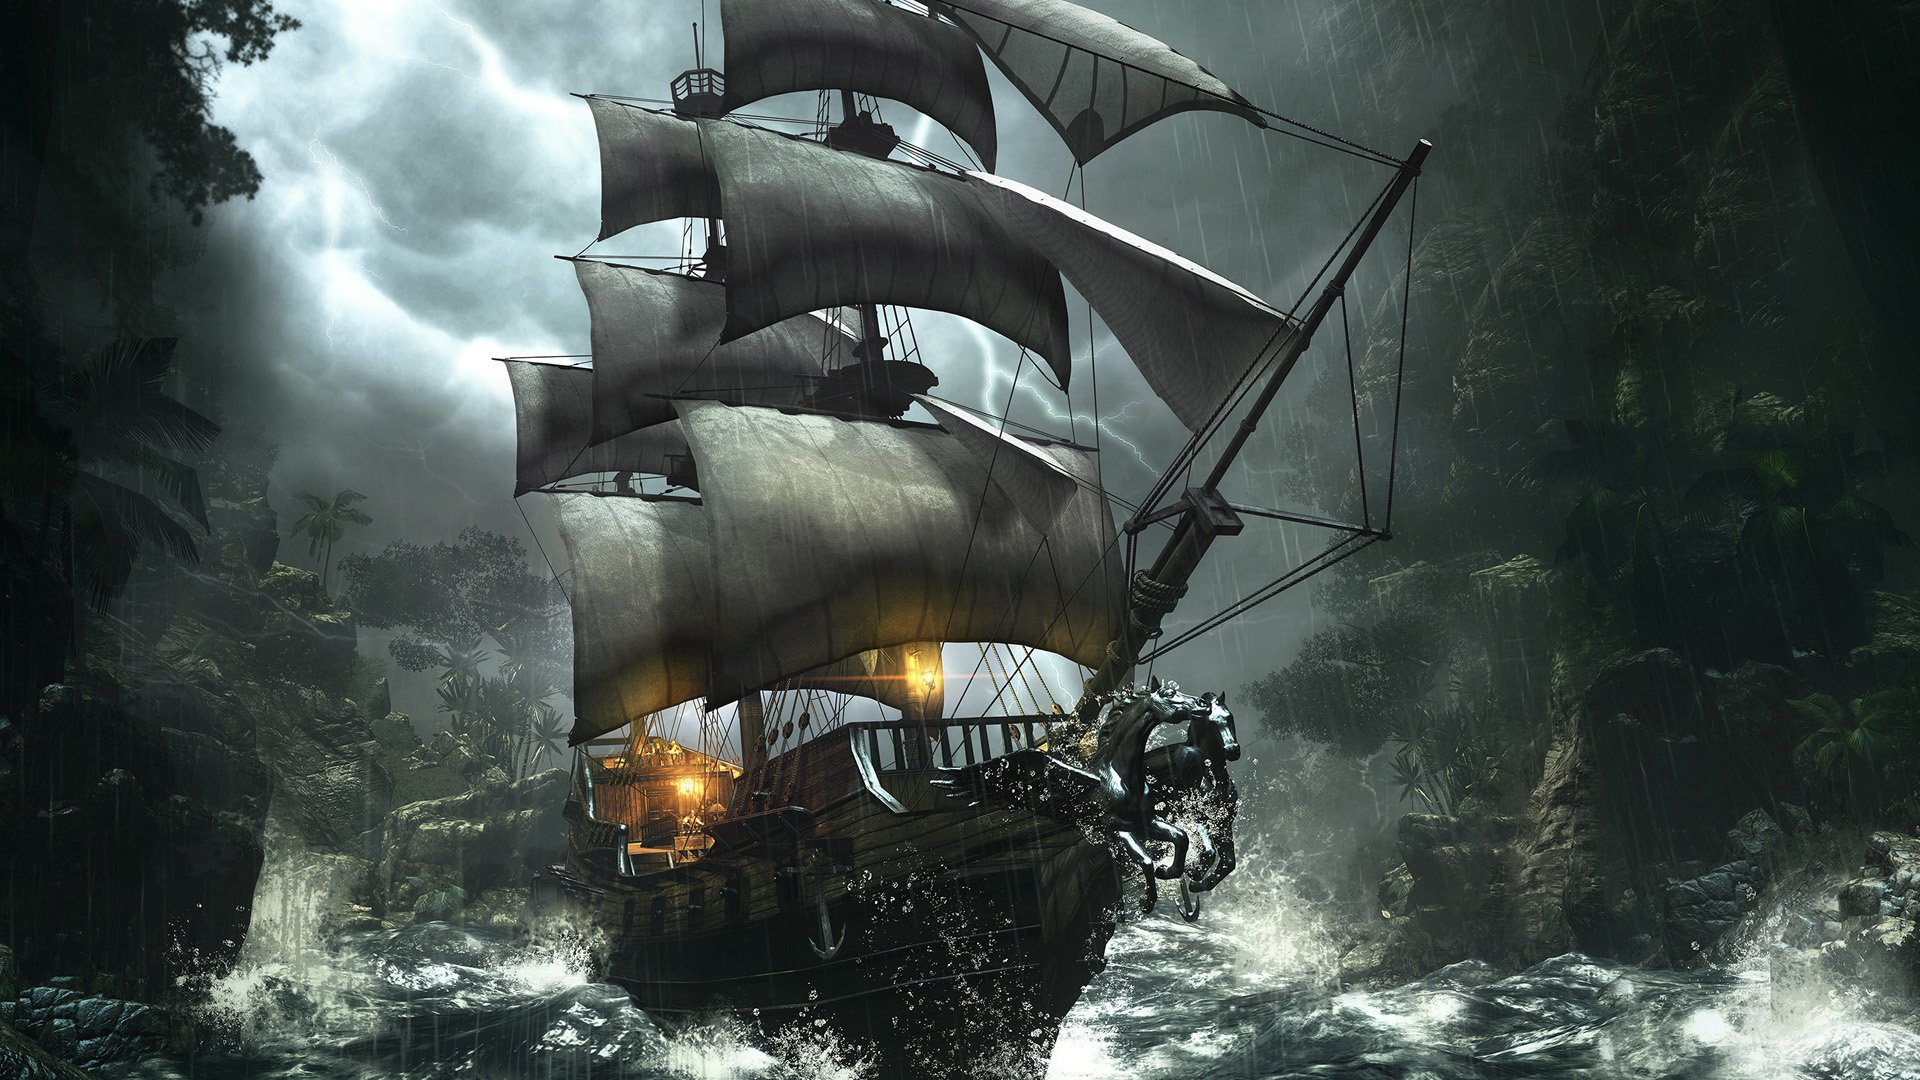 Pirates images pirate ship hd wallpaper and background photos 1920x1080 - Walpepar photos ...